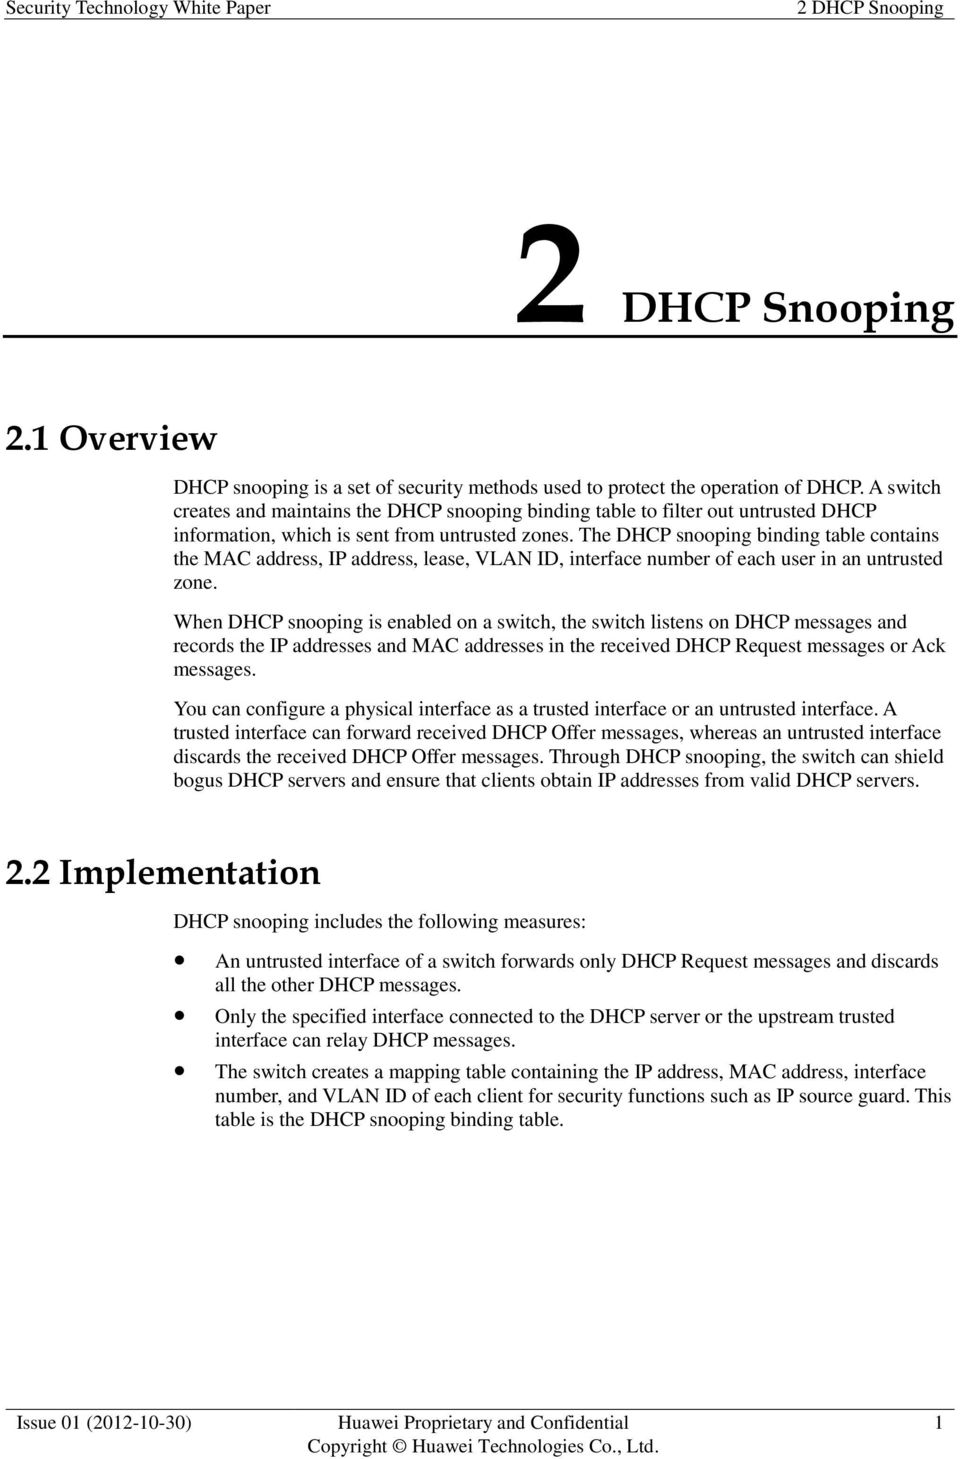 The DHCP snooping binding table contains the MAC address, IP address, lease, VLAN ID, interface number of each user in an untrusted zone.